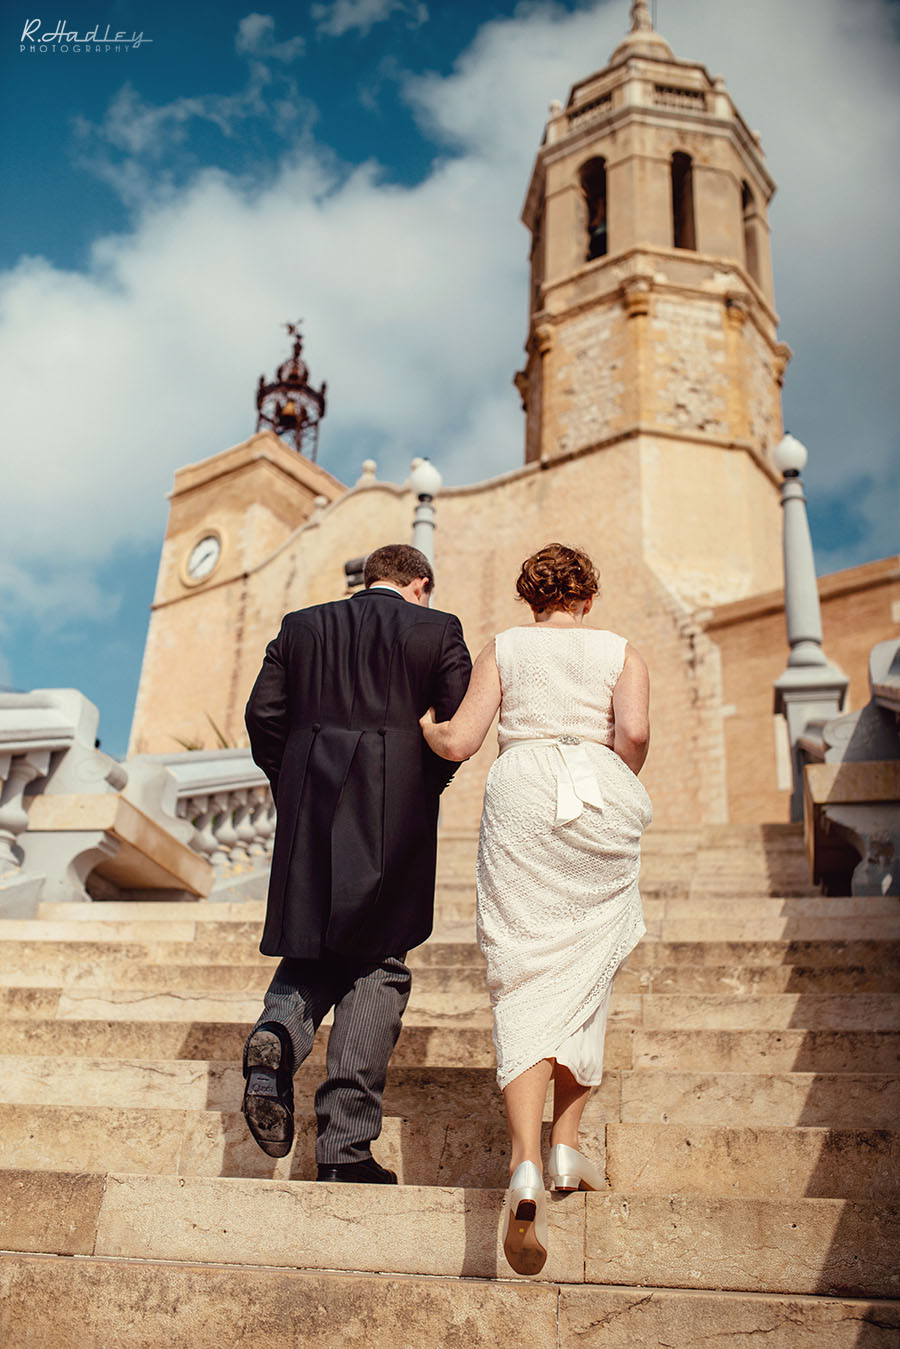 Wedding in SItges, Barcelona Spain.